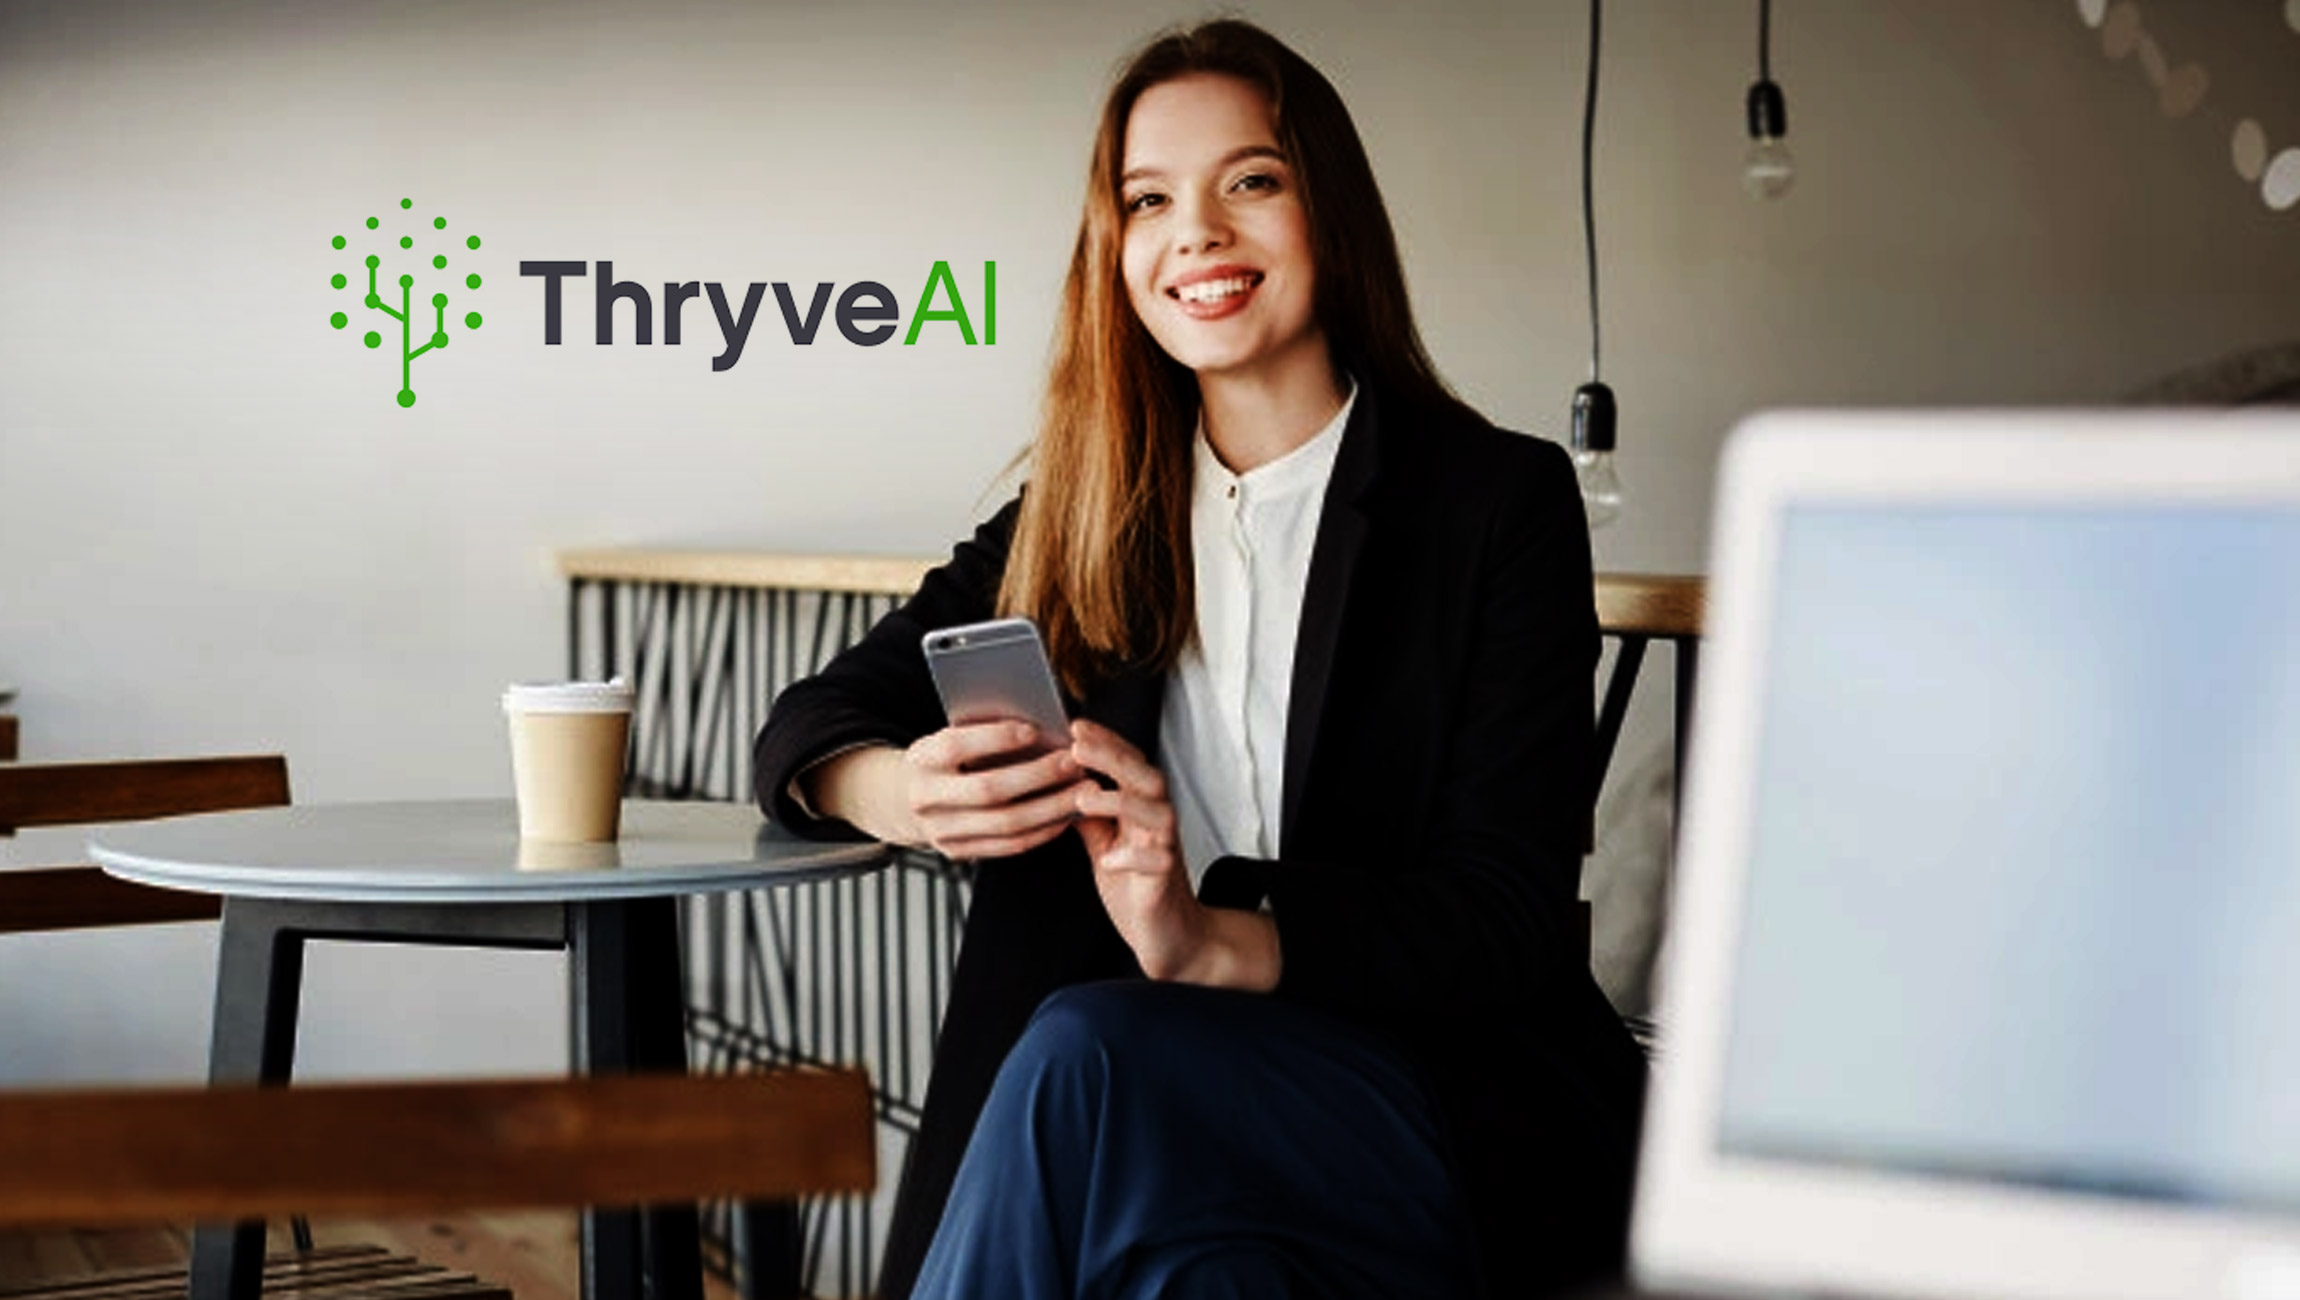 ThryvPay Grows to Top Payment Provider Inside Thryv Platform